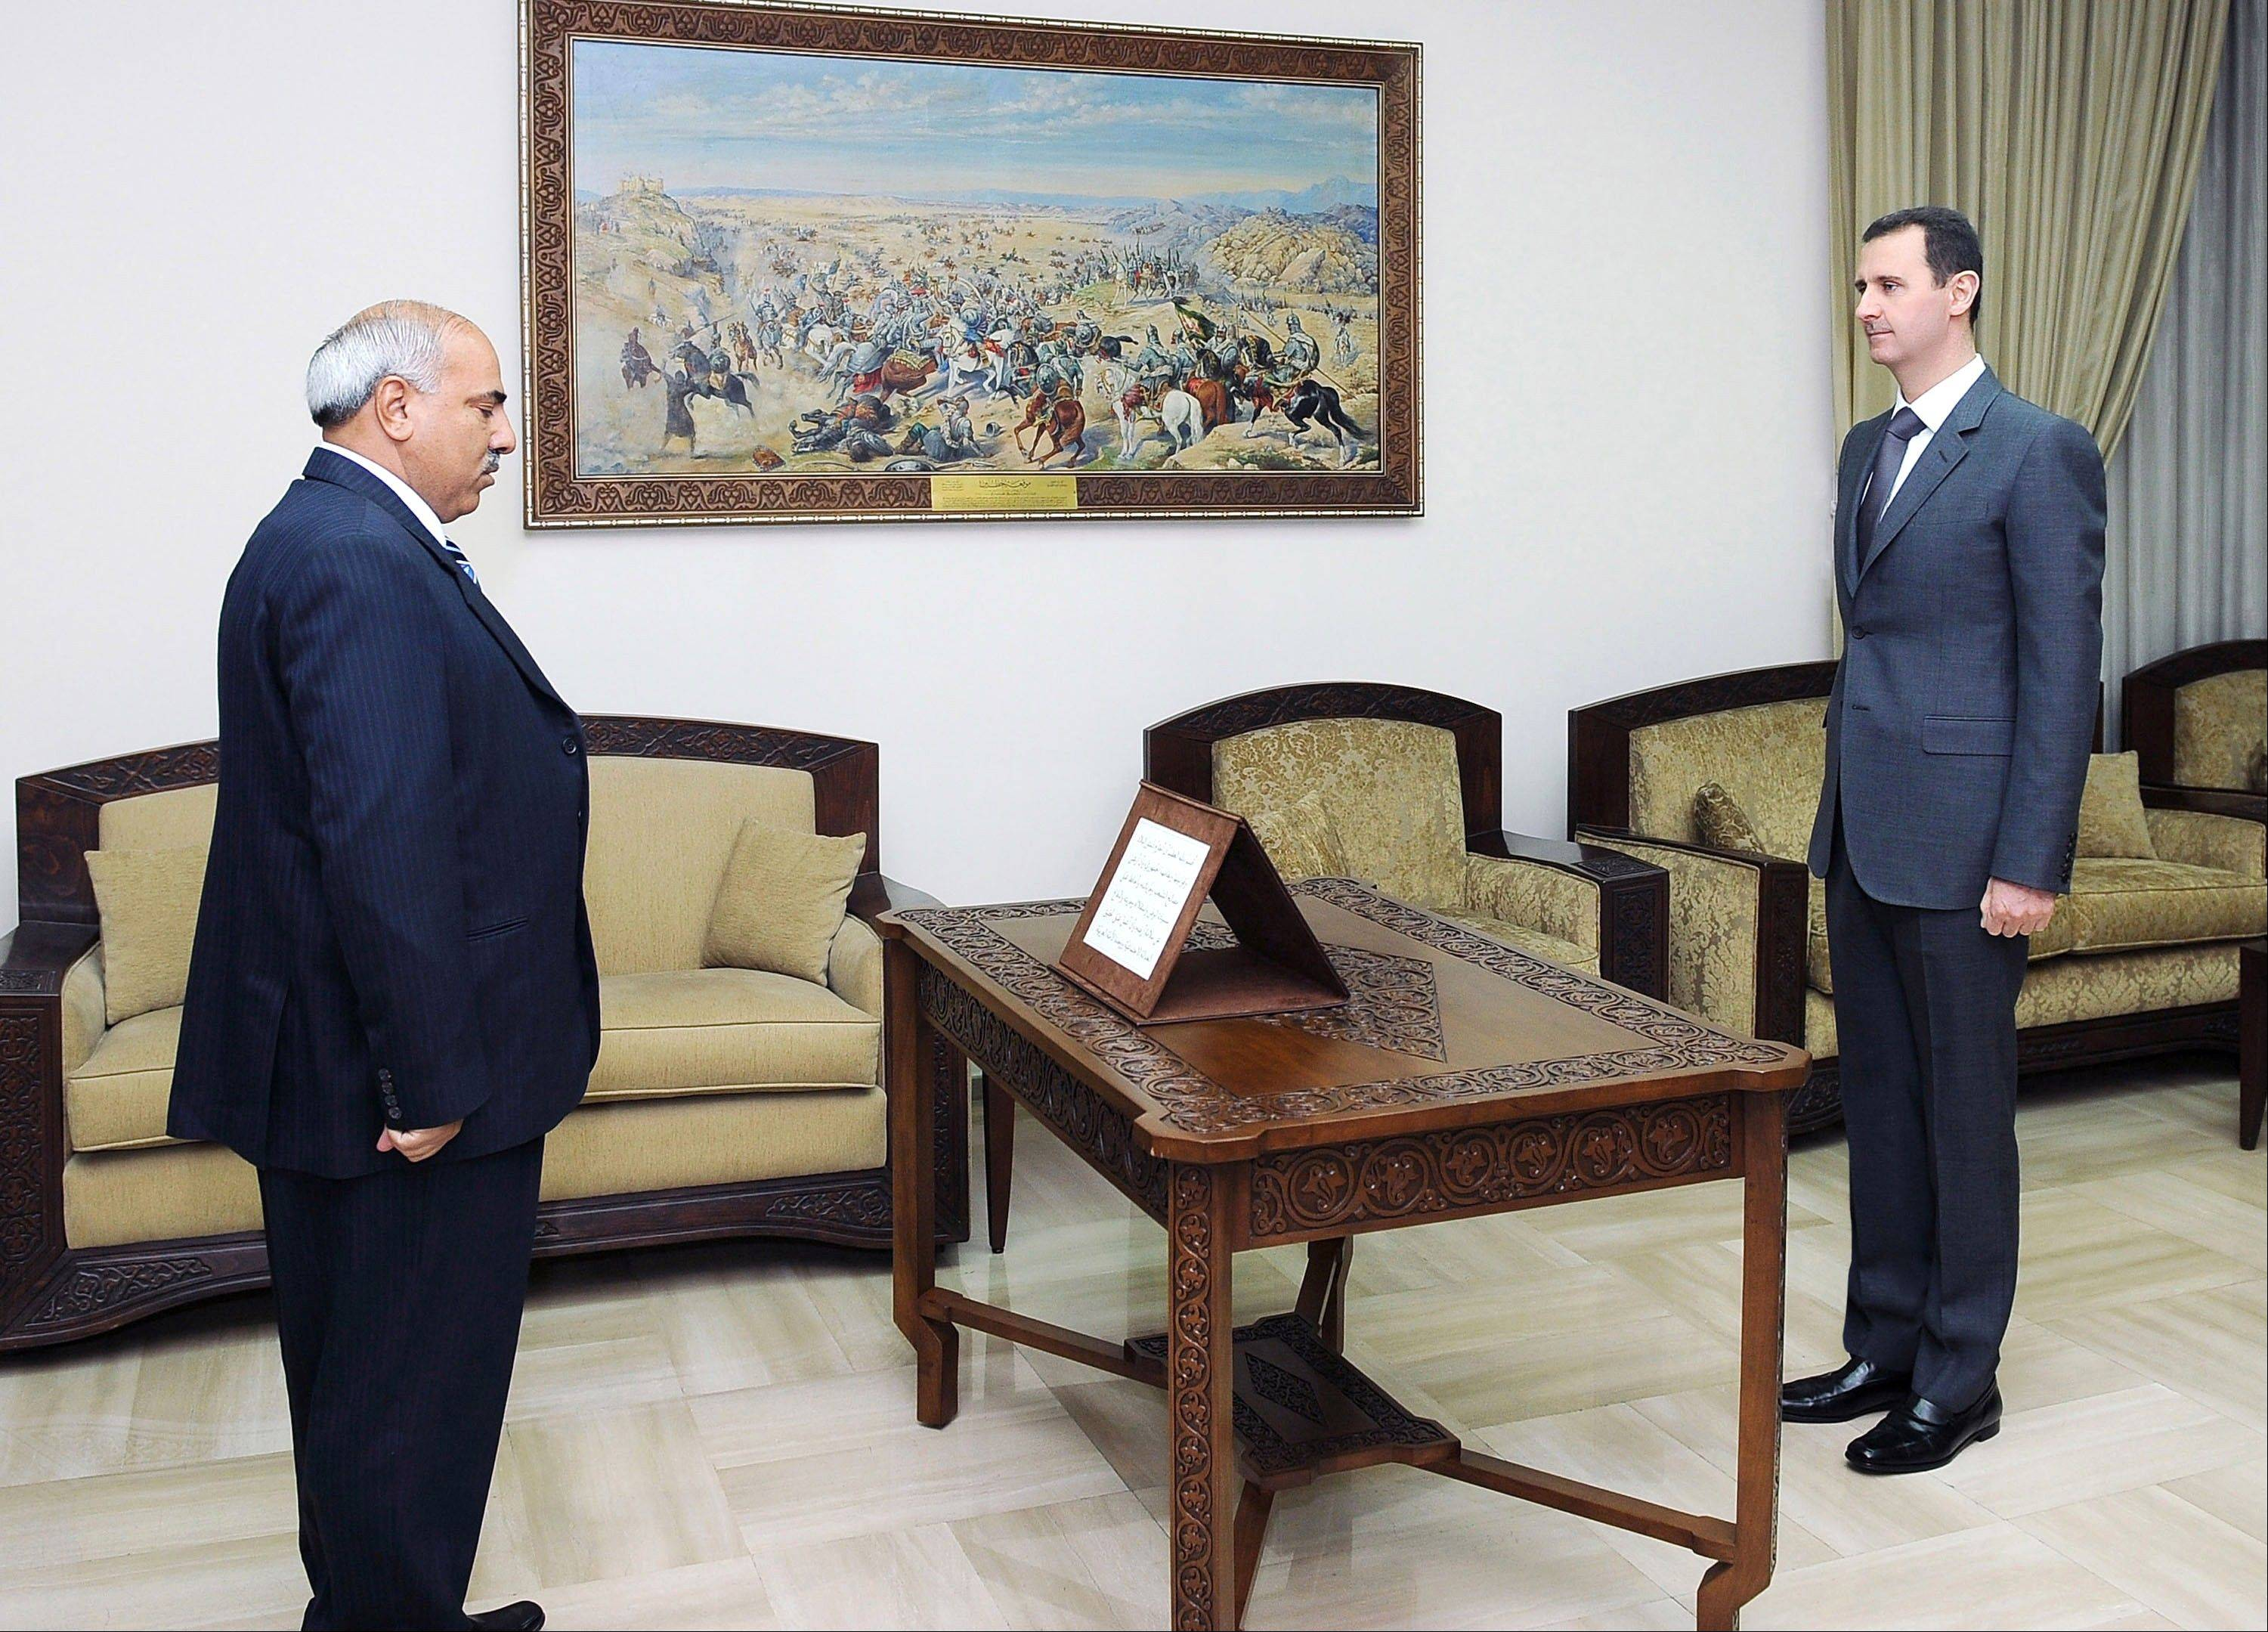 In this photo released by the Syrian official news agency SANA, Mohammed Zaal al-Ali, left, is sworn in Thursday as governor of Hasaka province by Syrian President Bashar Assad, right, in Damascus, Syria.